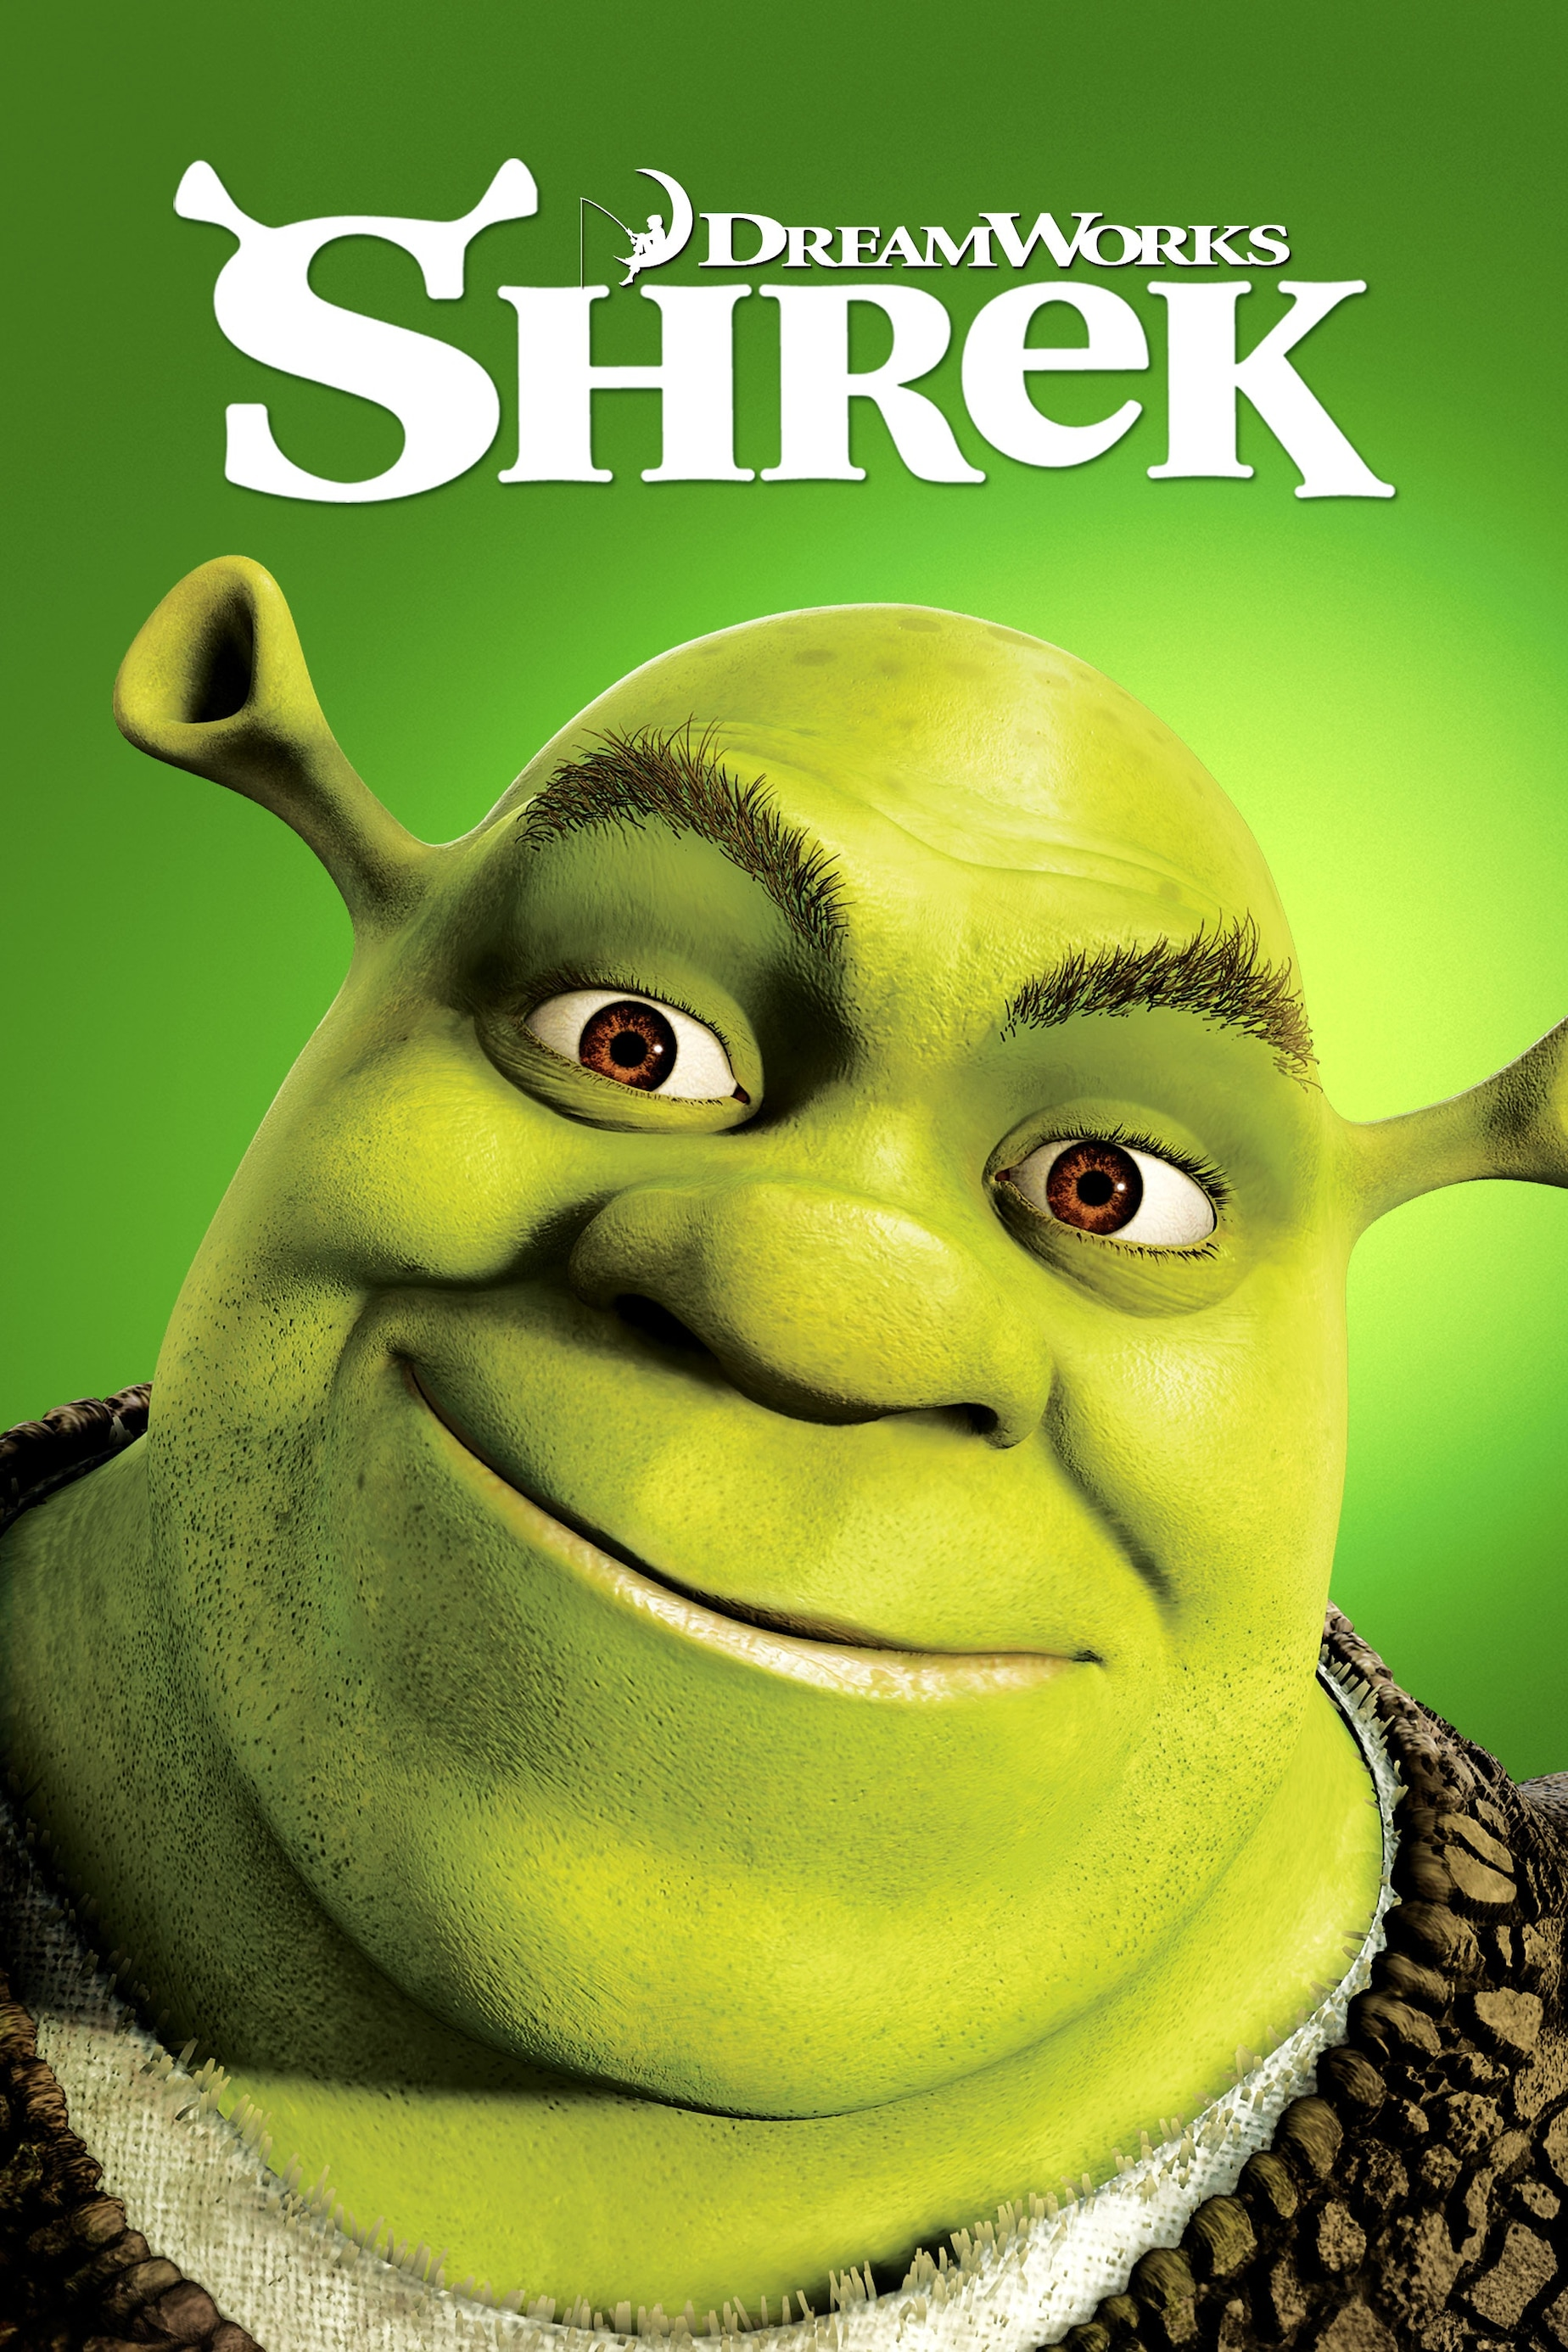 shrek full movie online free no download